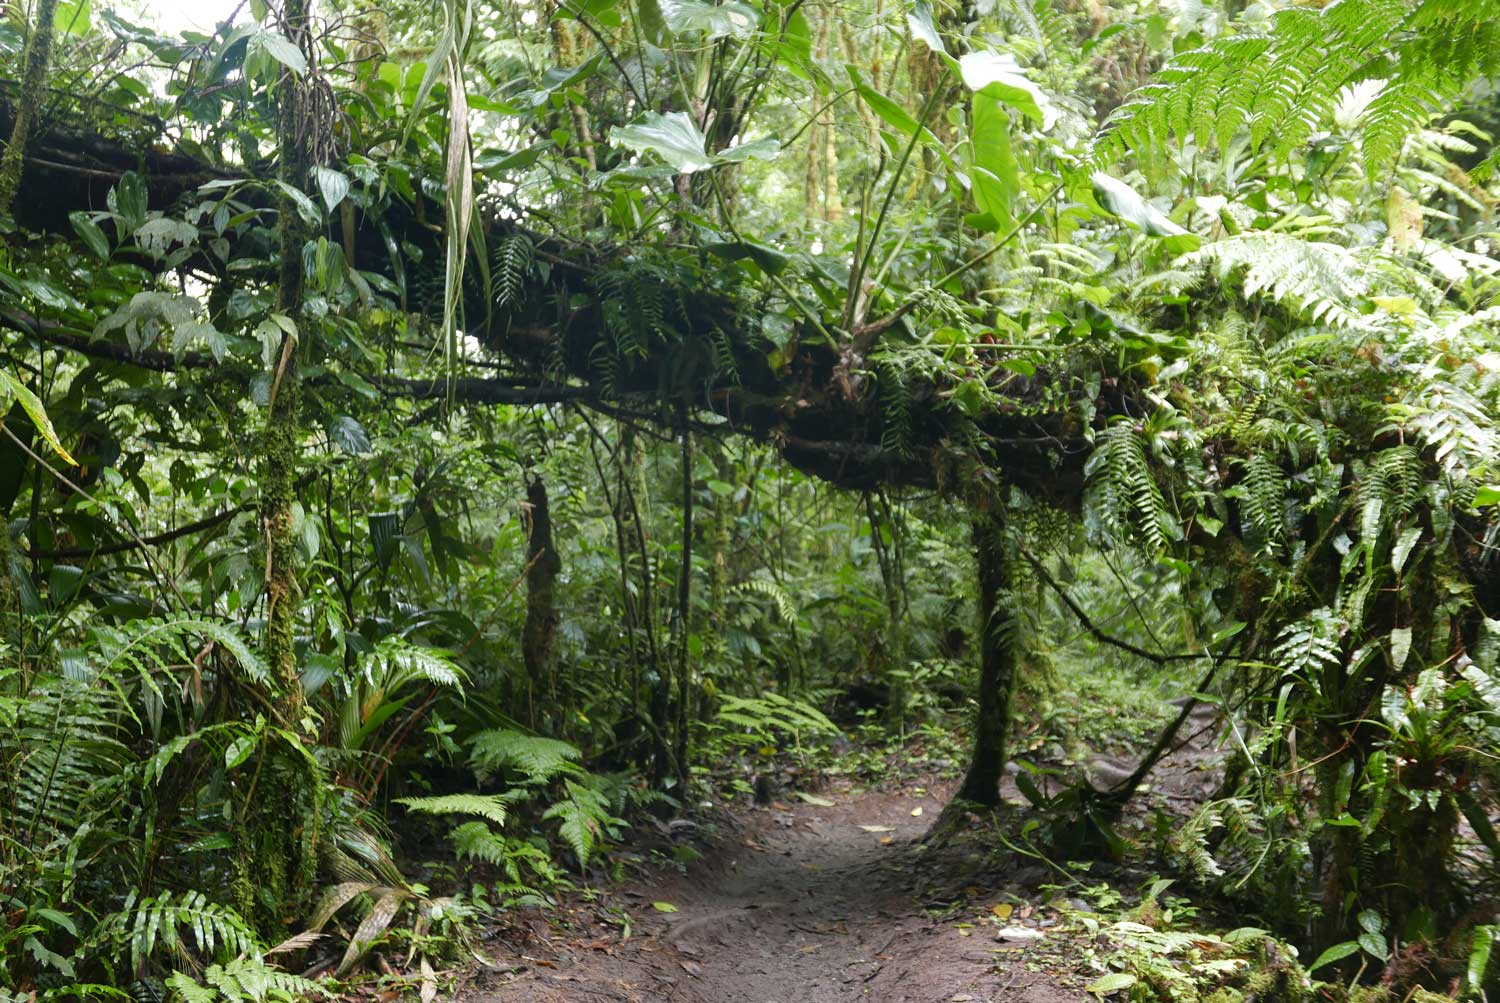 Trees everywhere along and across the pathway in Santa Elena cloud forest